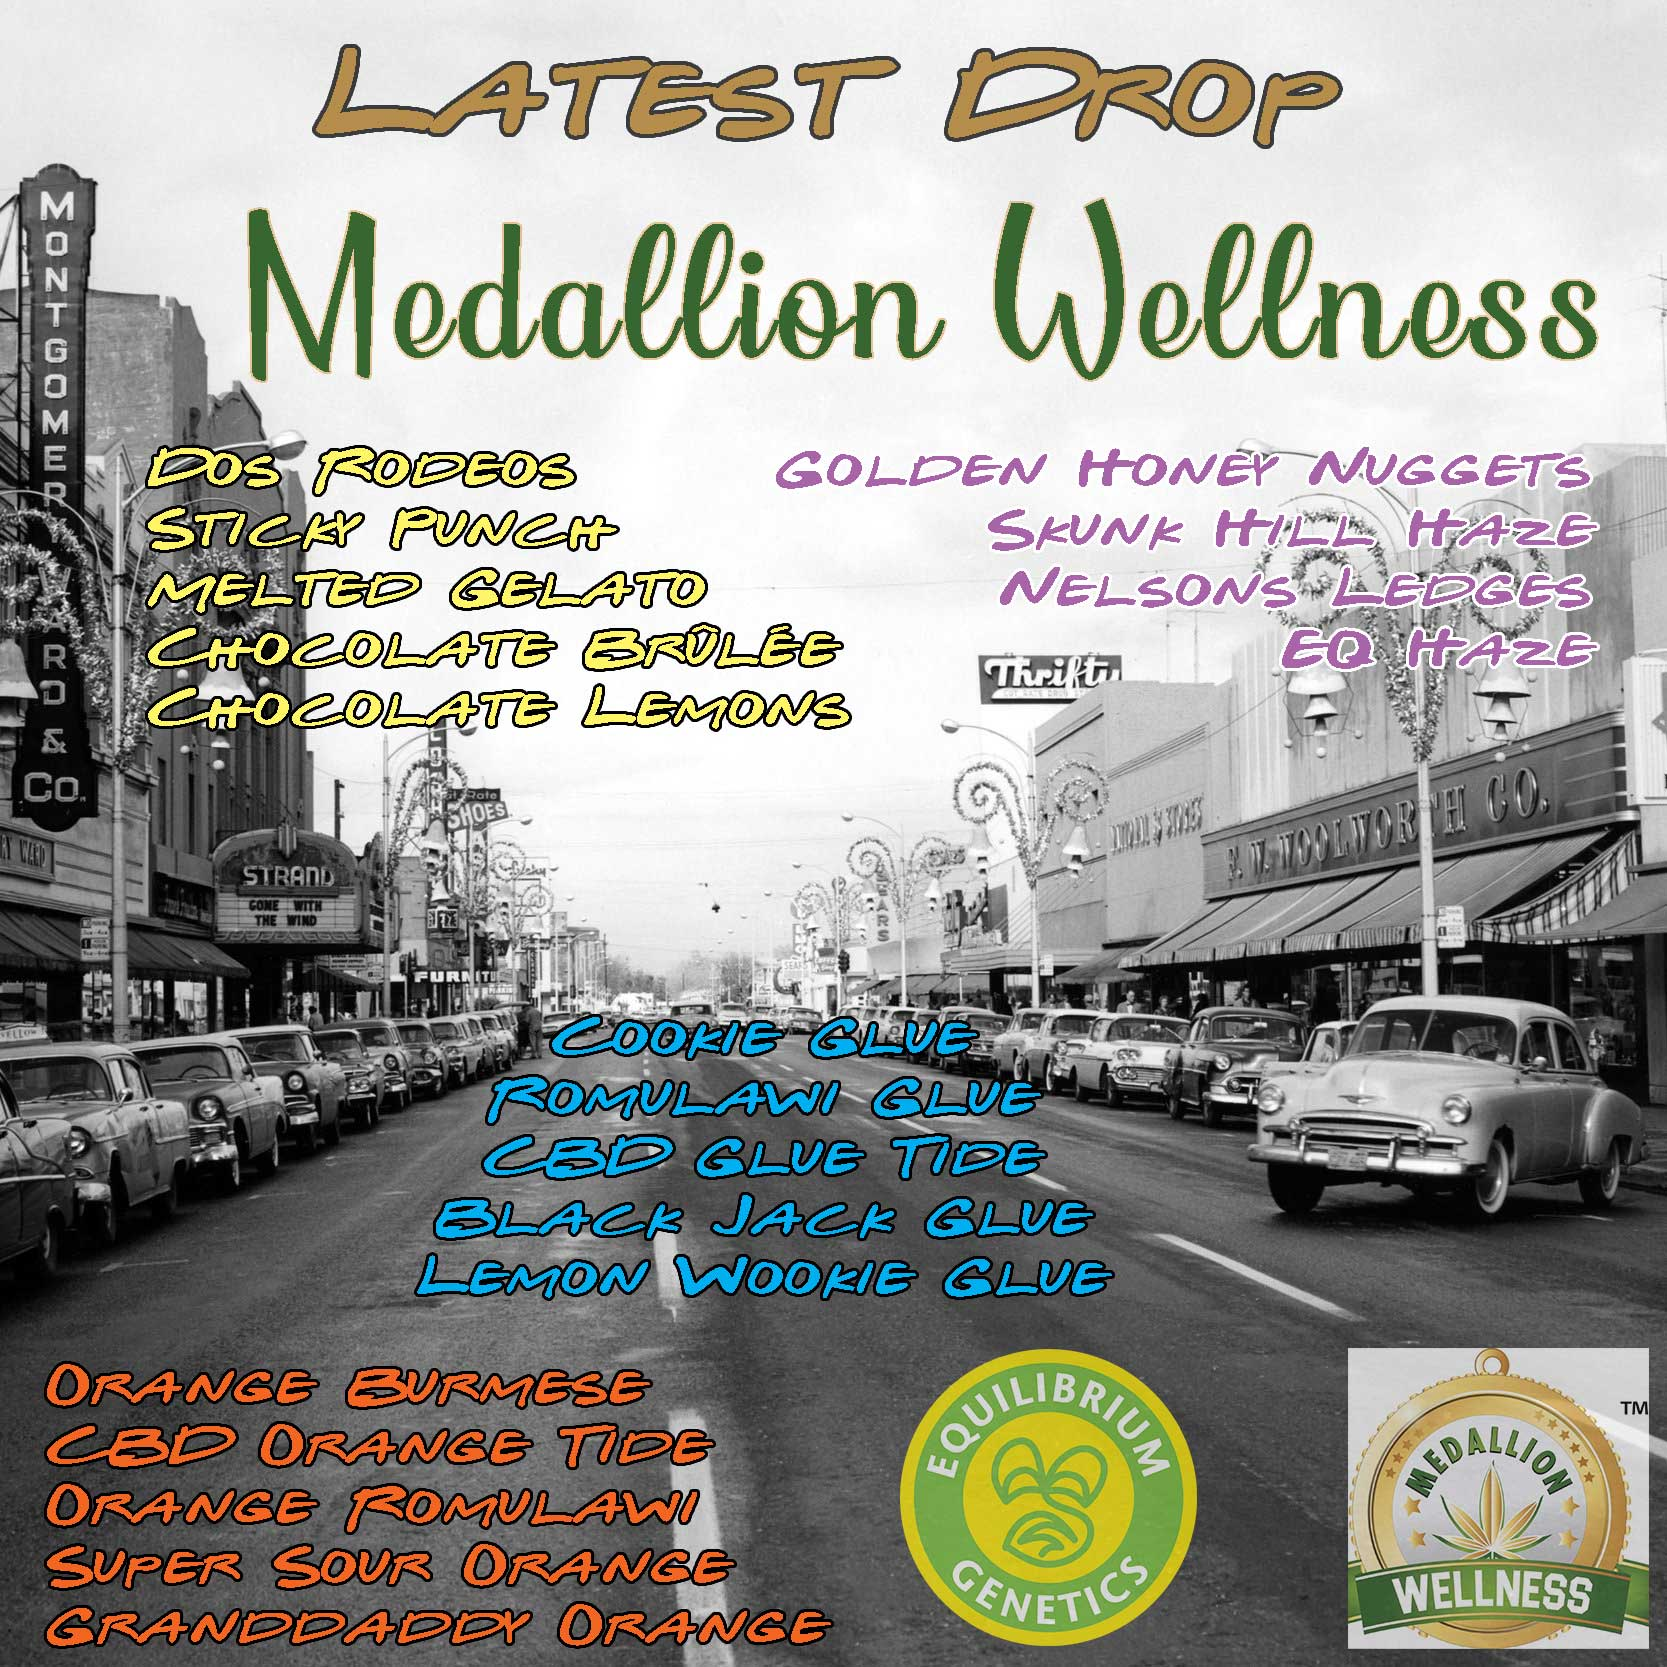 Latest Drop: Medallion Wellness